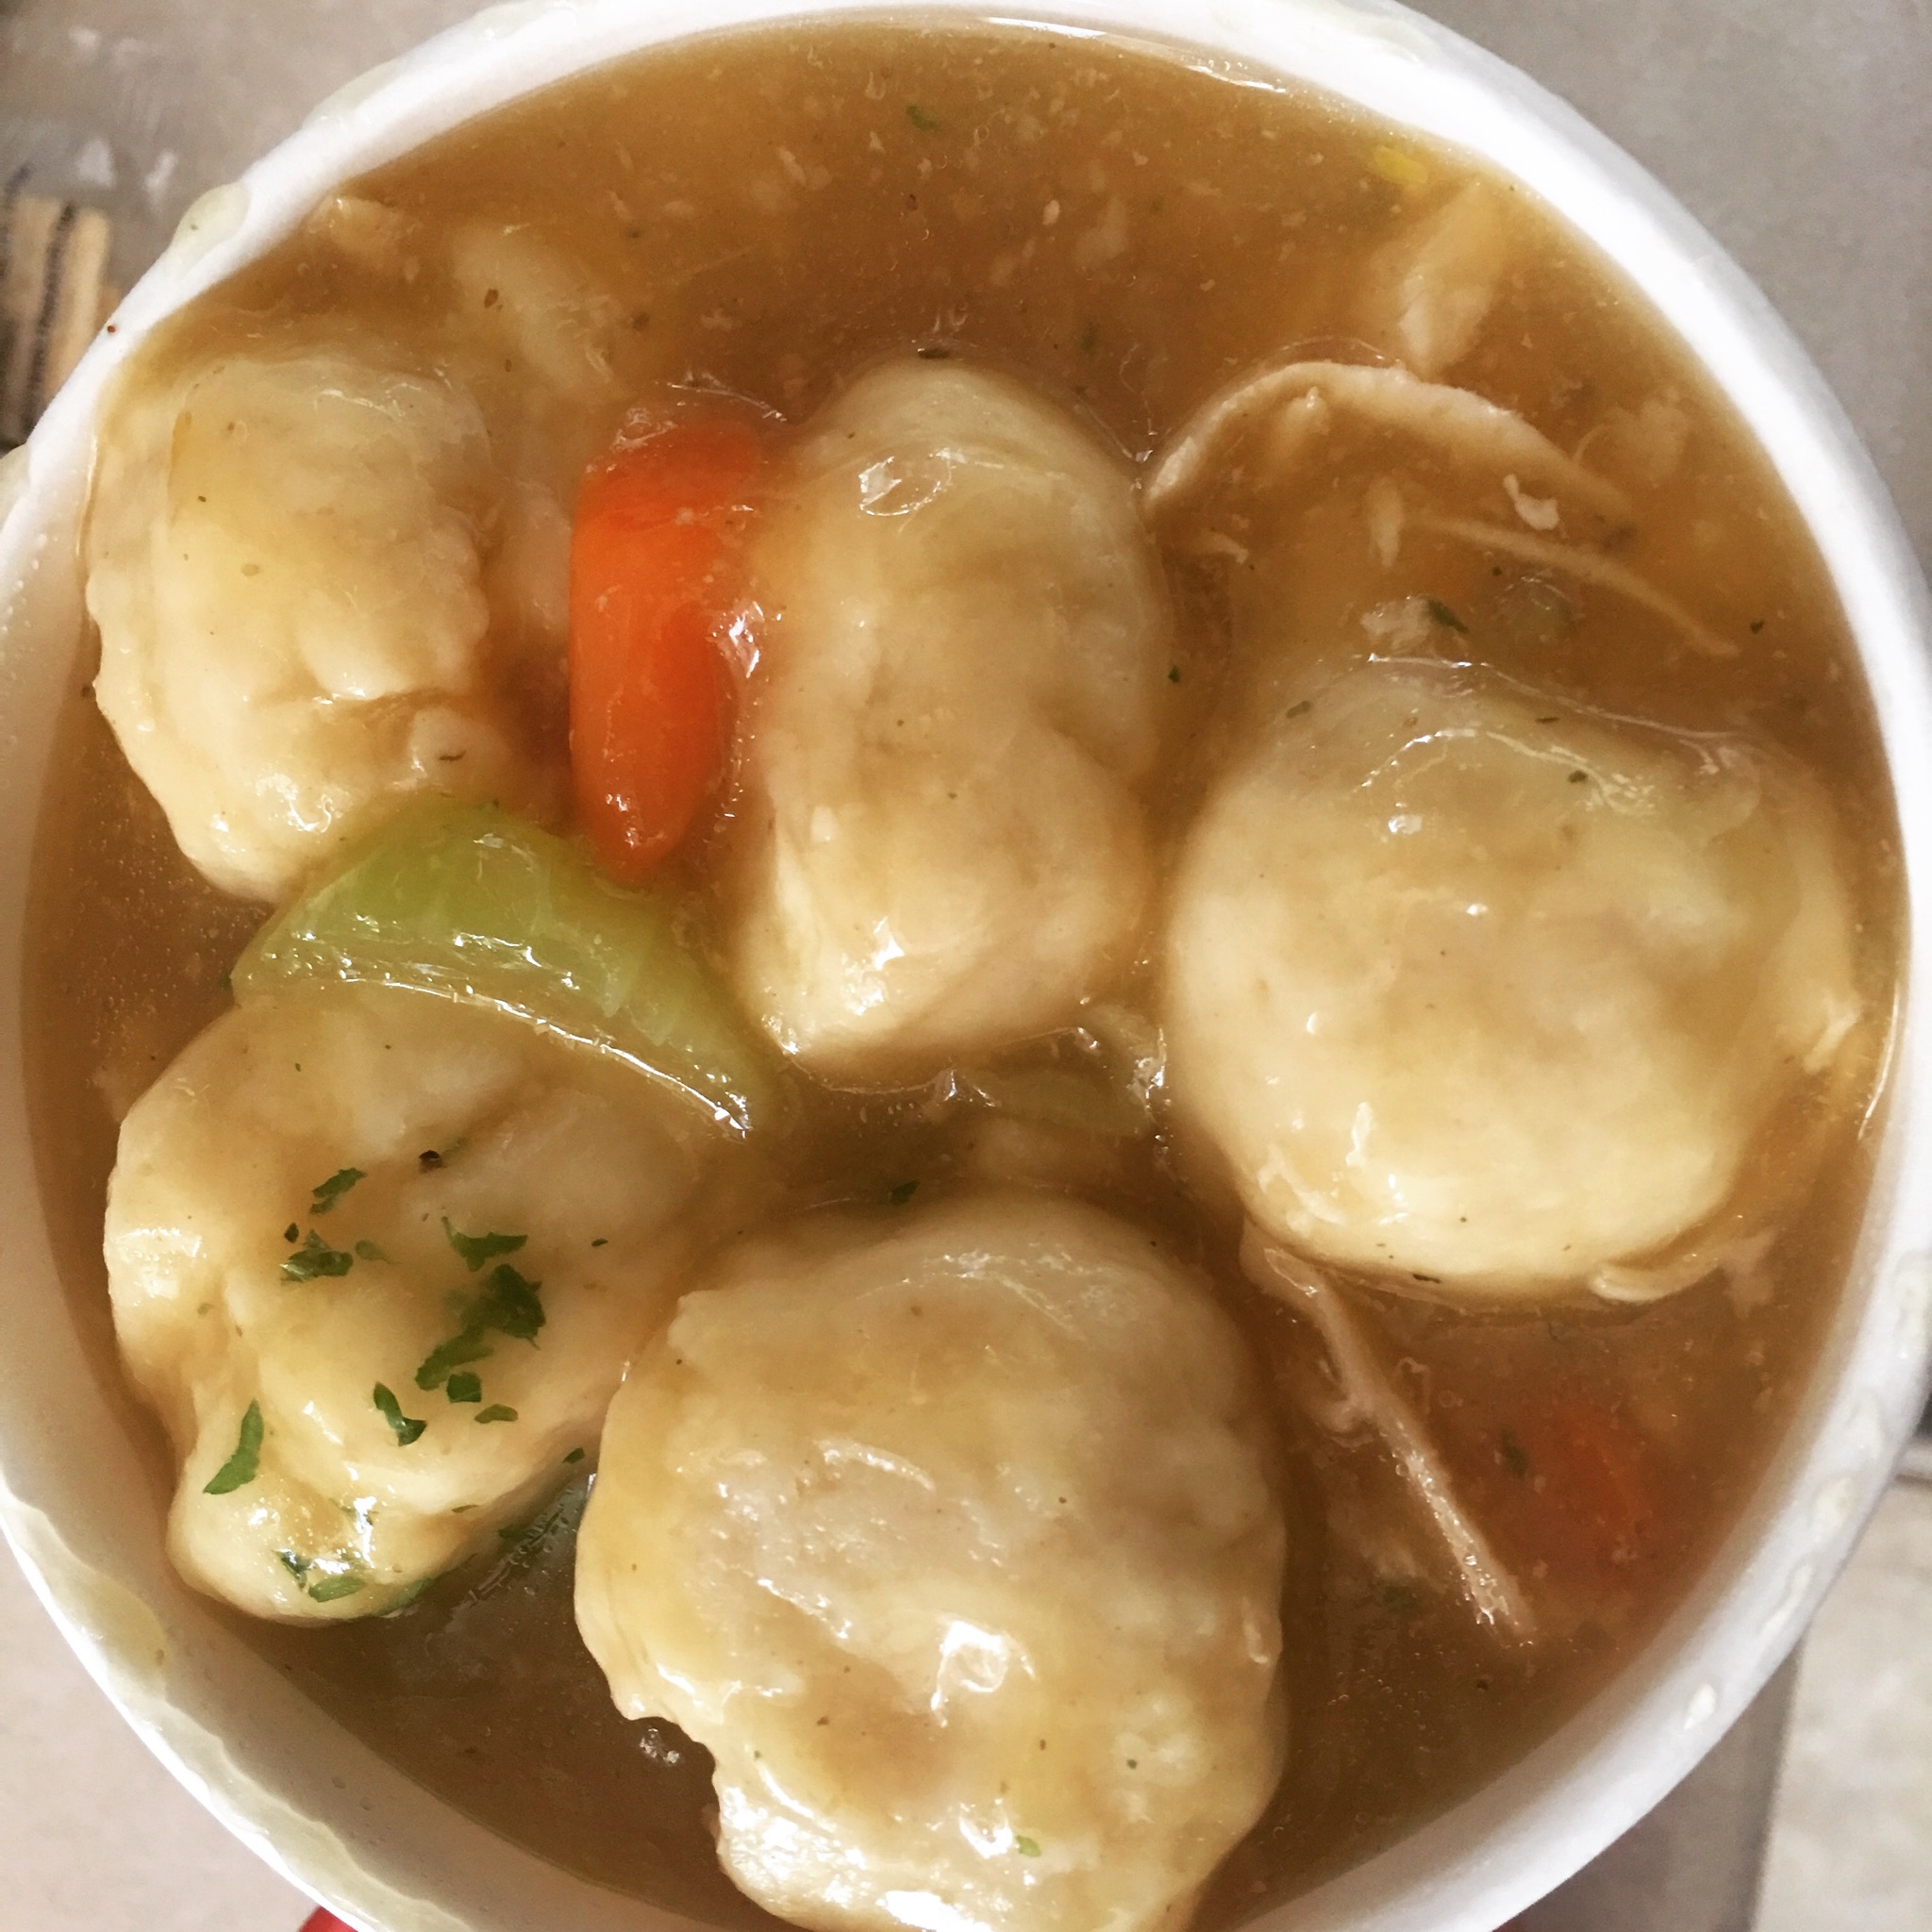 A Tanker of Chicken Dumpling Soup from Island View Market - March 11 2019